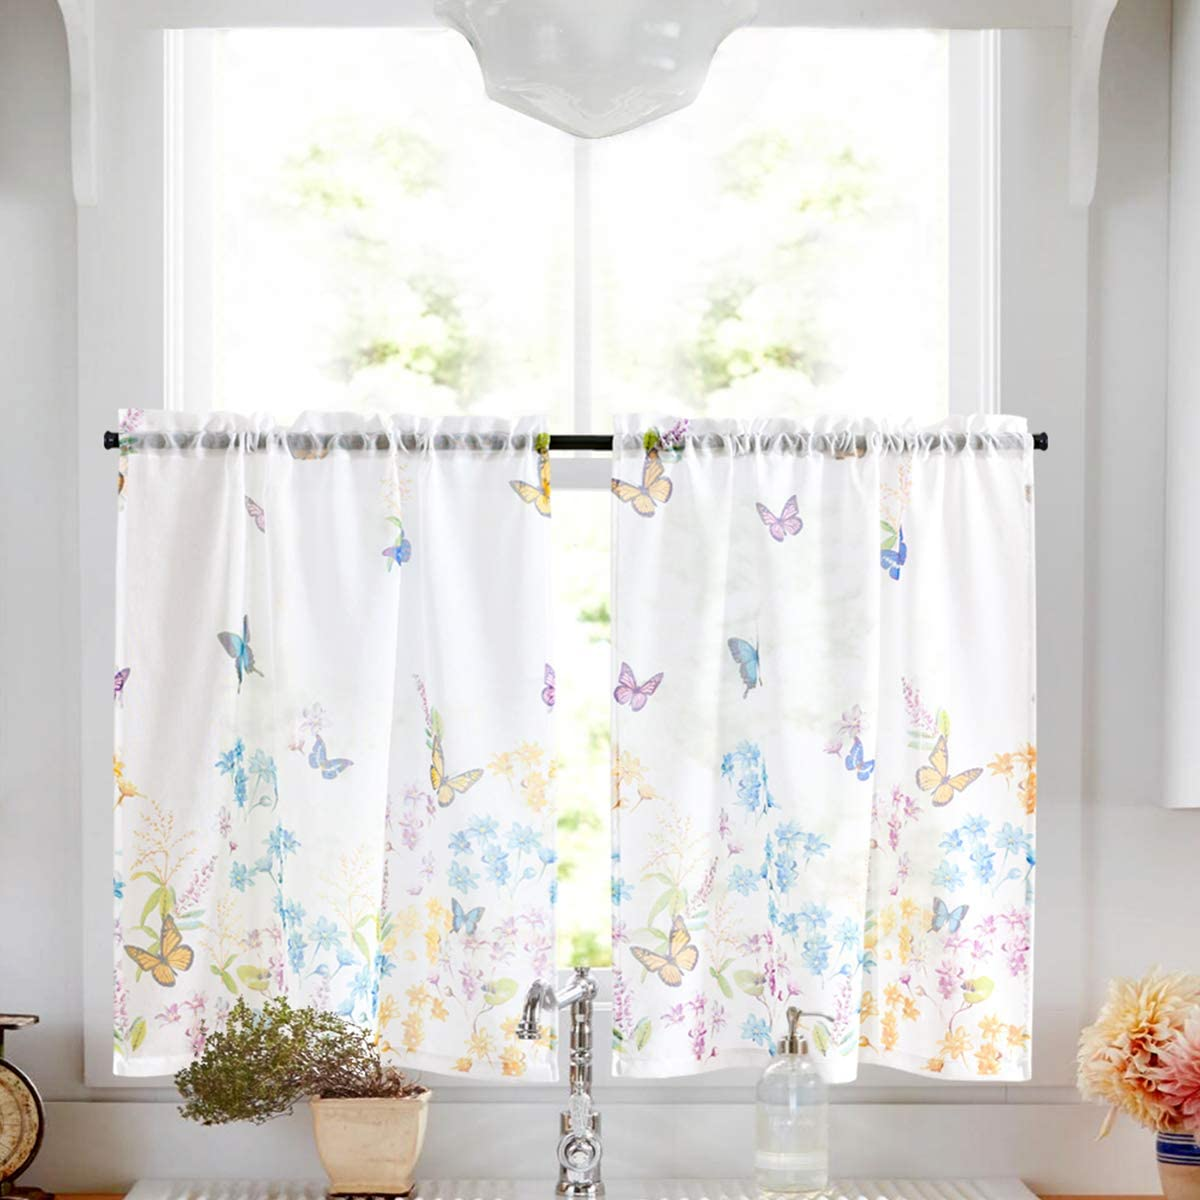 White Sheer Tiers with Butterfly Garden Pattern Curtains for Bathroom Rod Pocket Small Window Curtain for Kitchen 24 inch 2 Panels